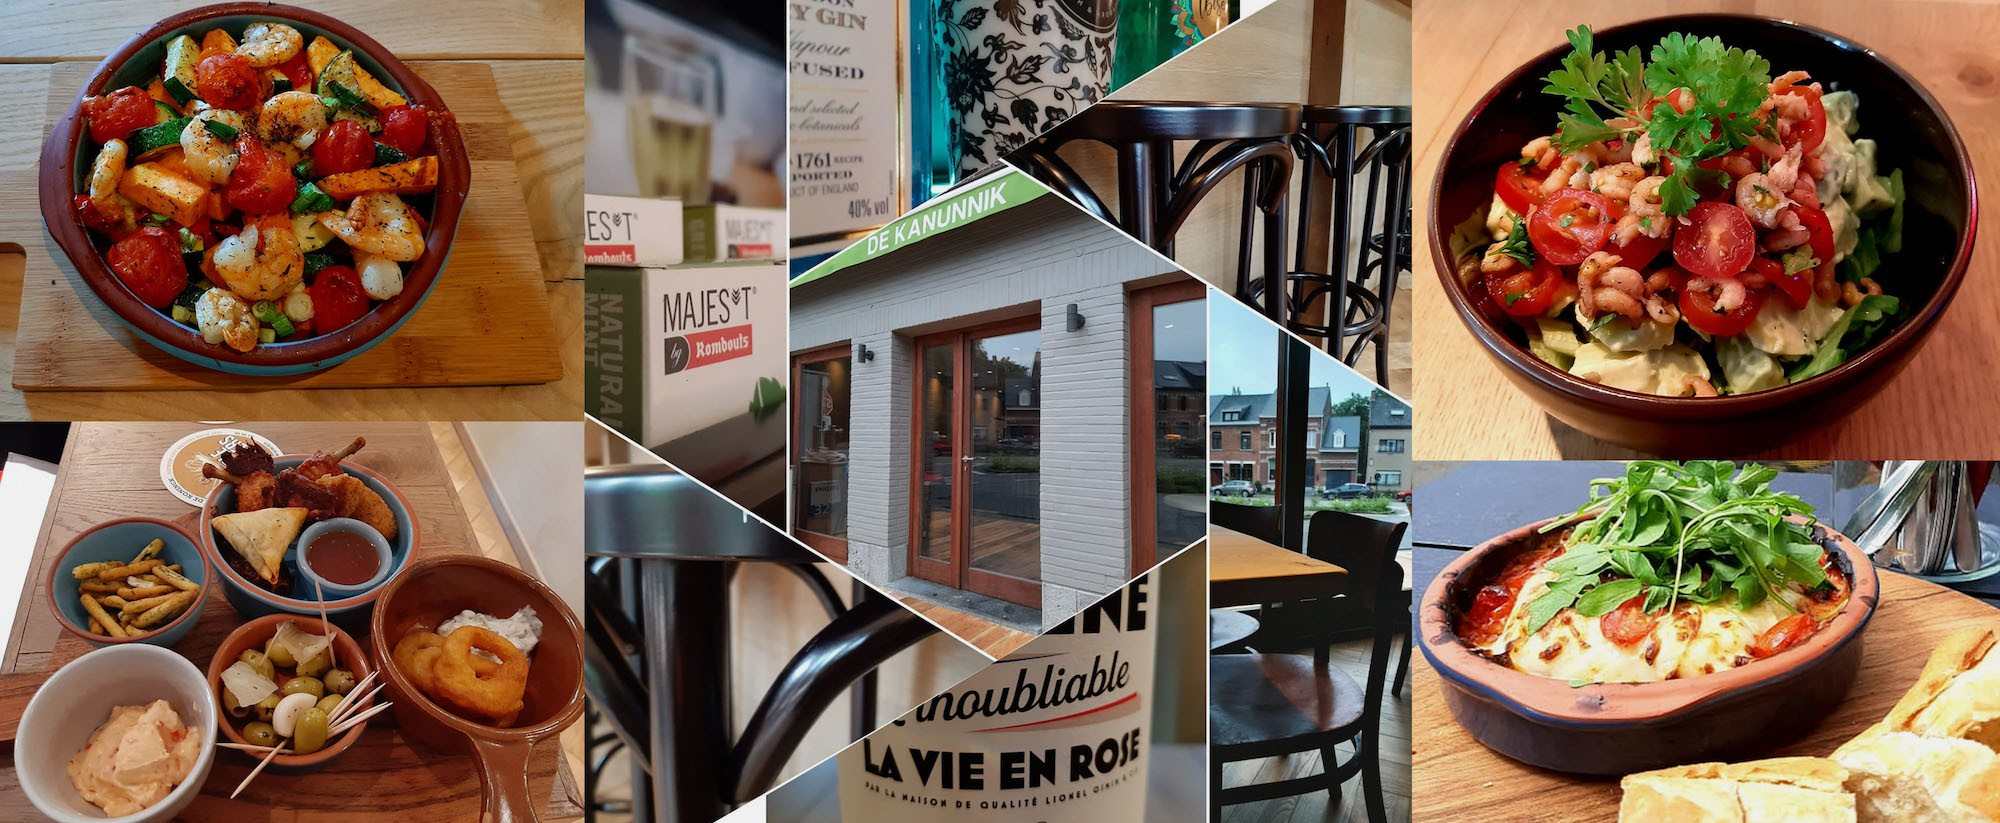 Header Café De Kanunnik - Tapas Willebroek